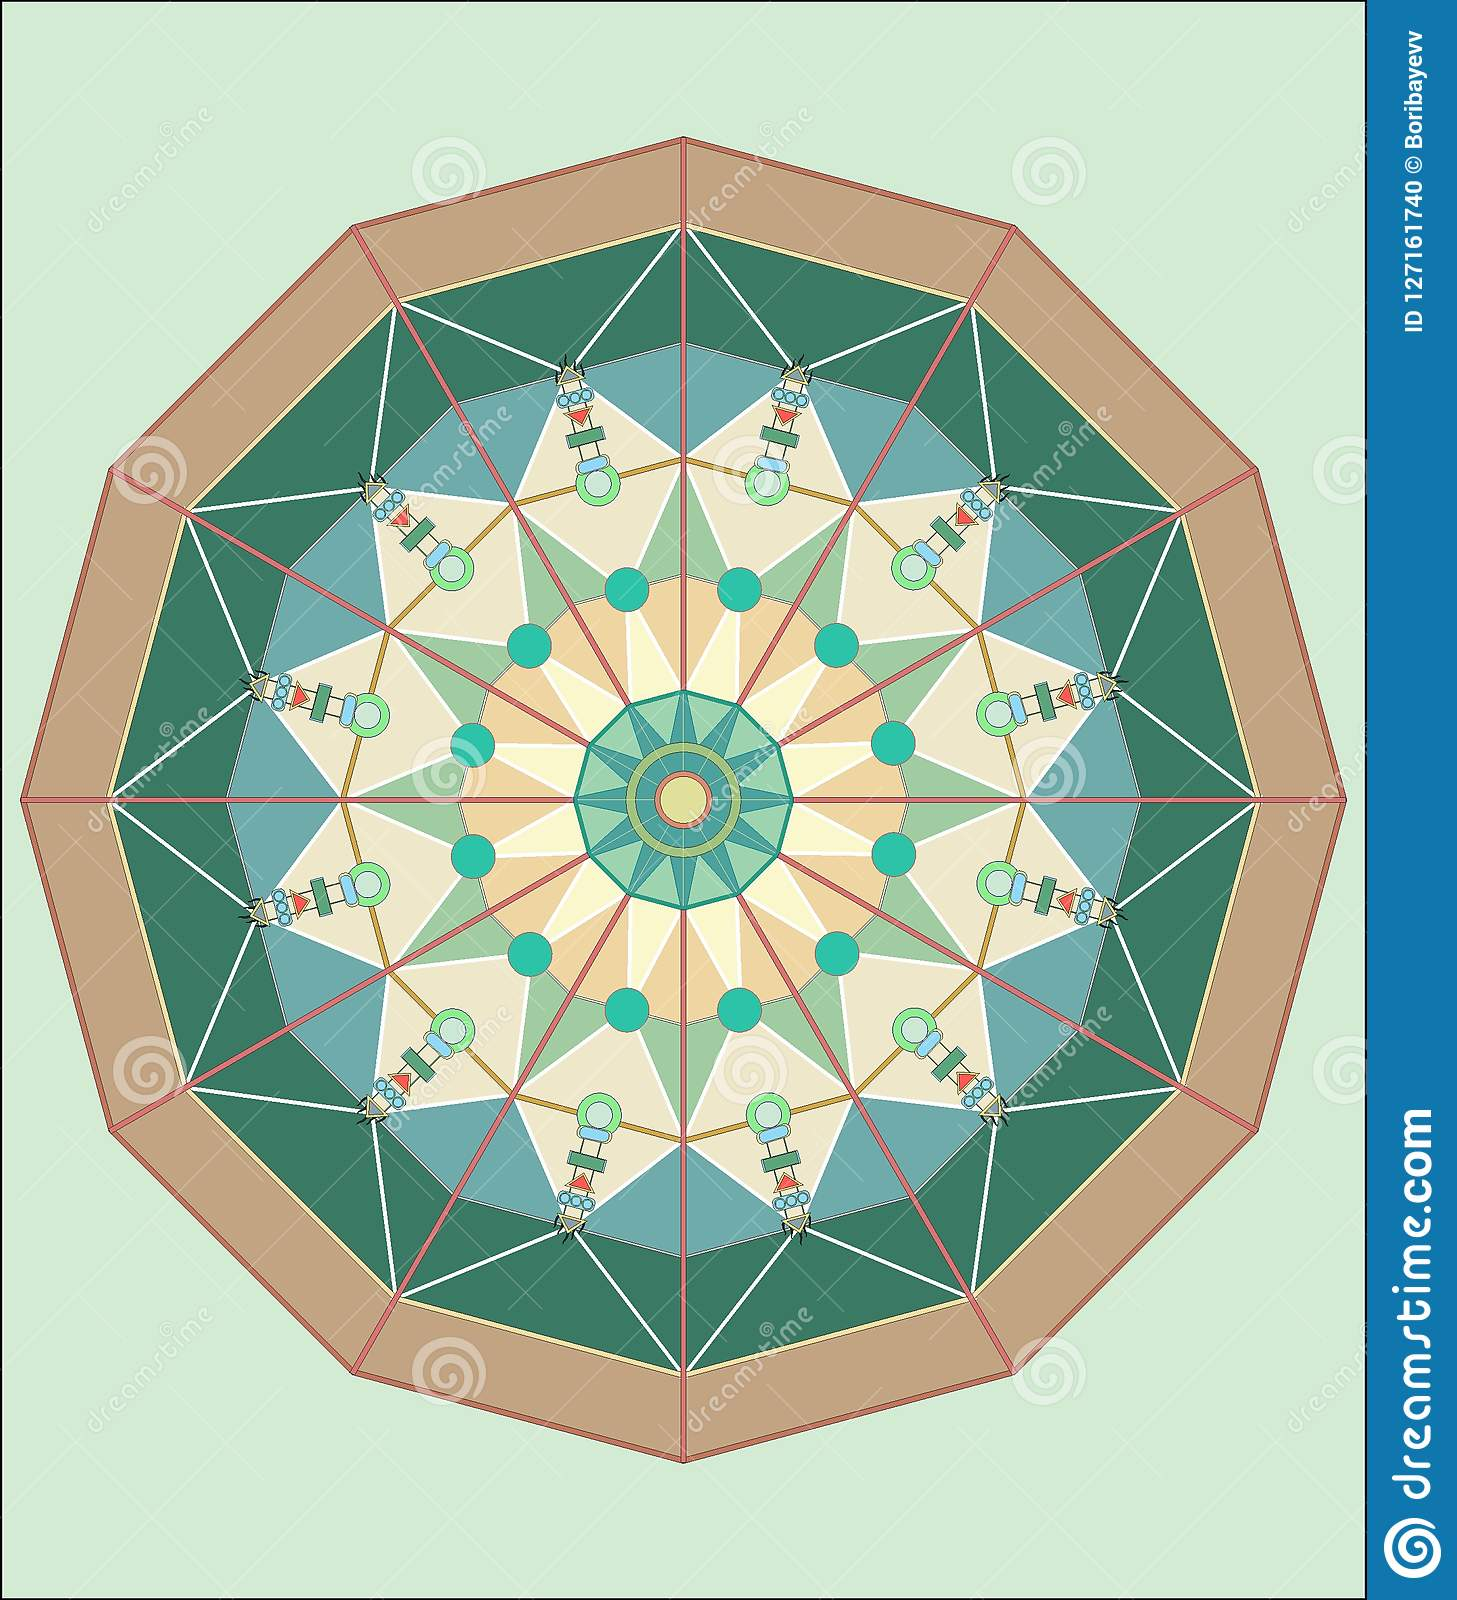 COMPLEX ISLAMIC GEOMETRICAL ORNAMENT IN A CIRCLE